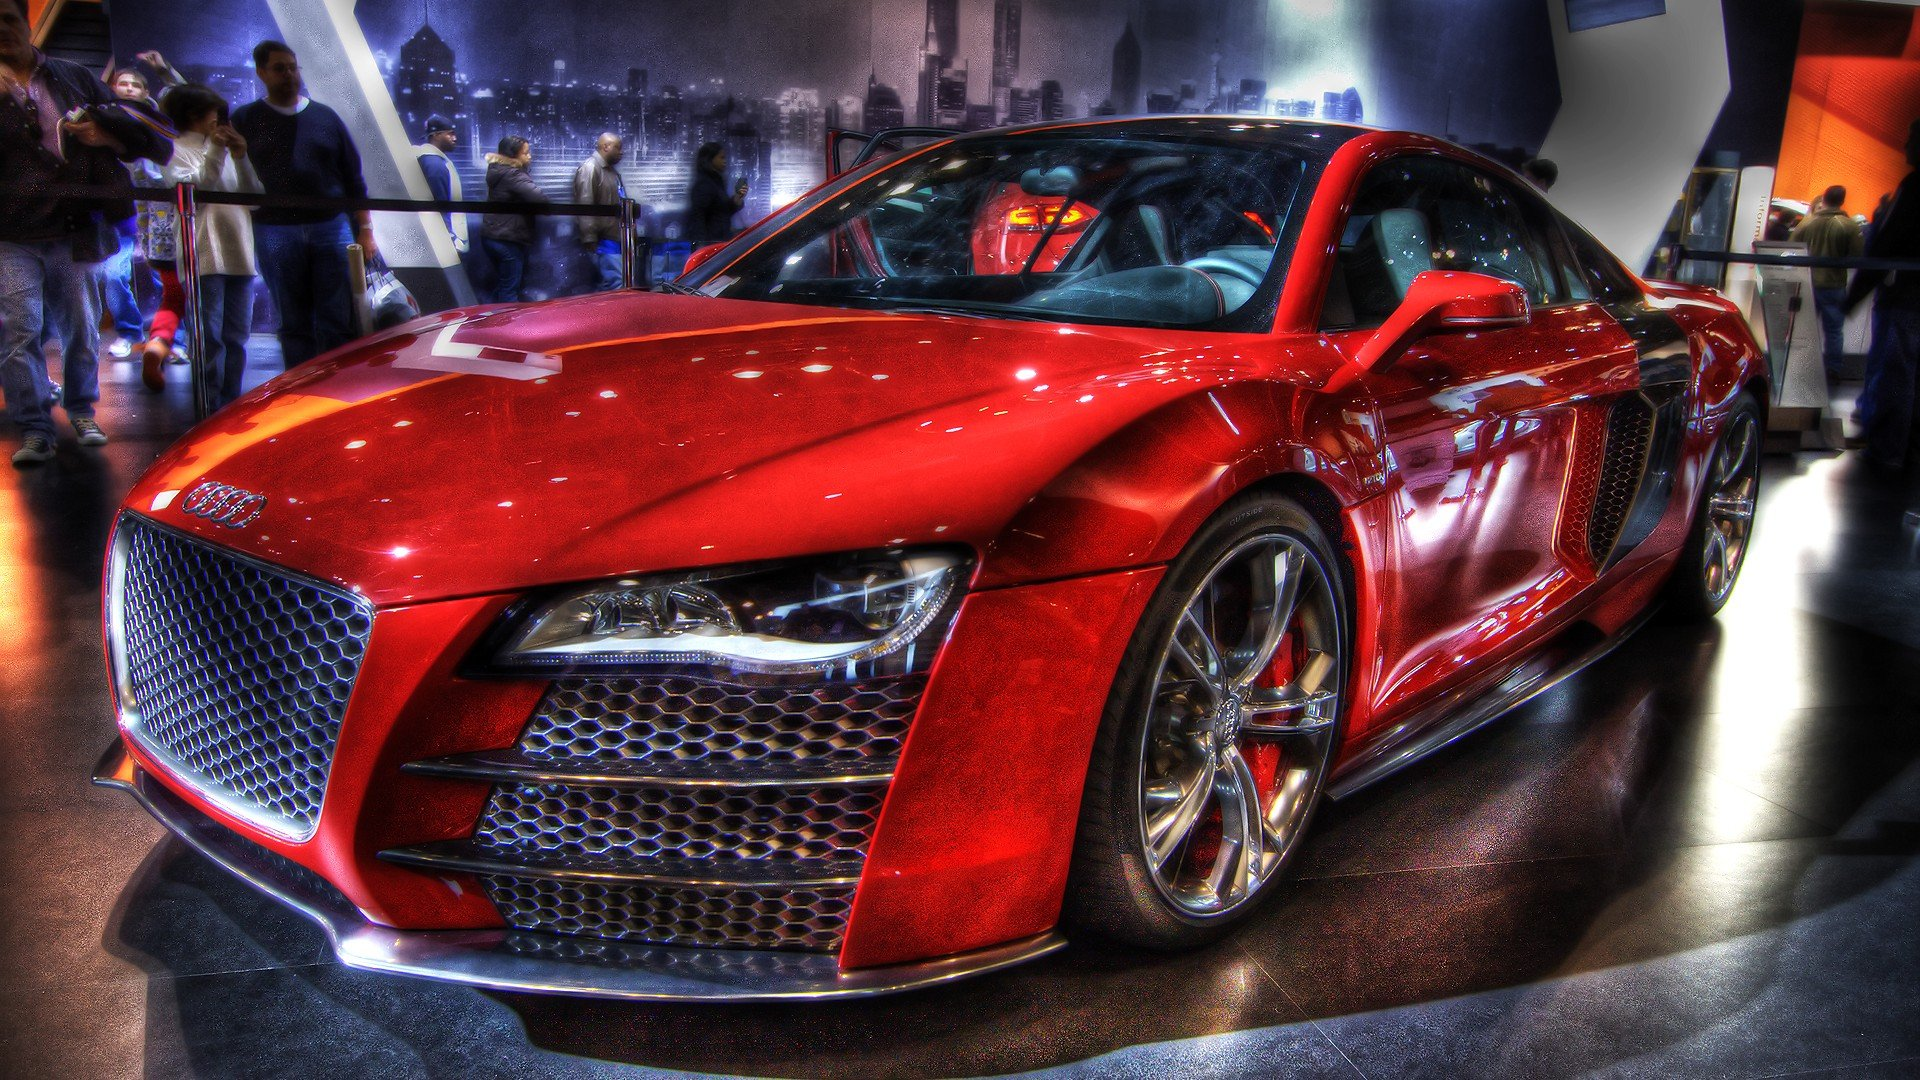 Audi R8 Red High Quality WallpapersWallpaper DesktopHigh 1920x1080